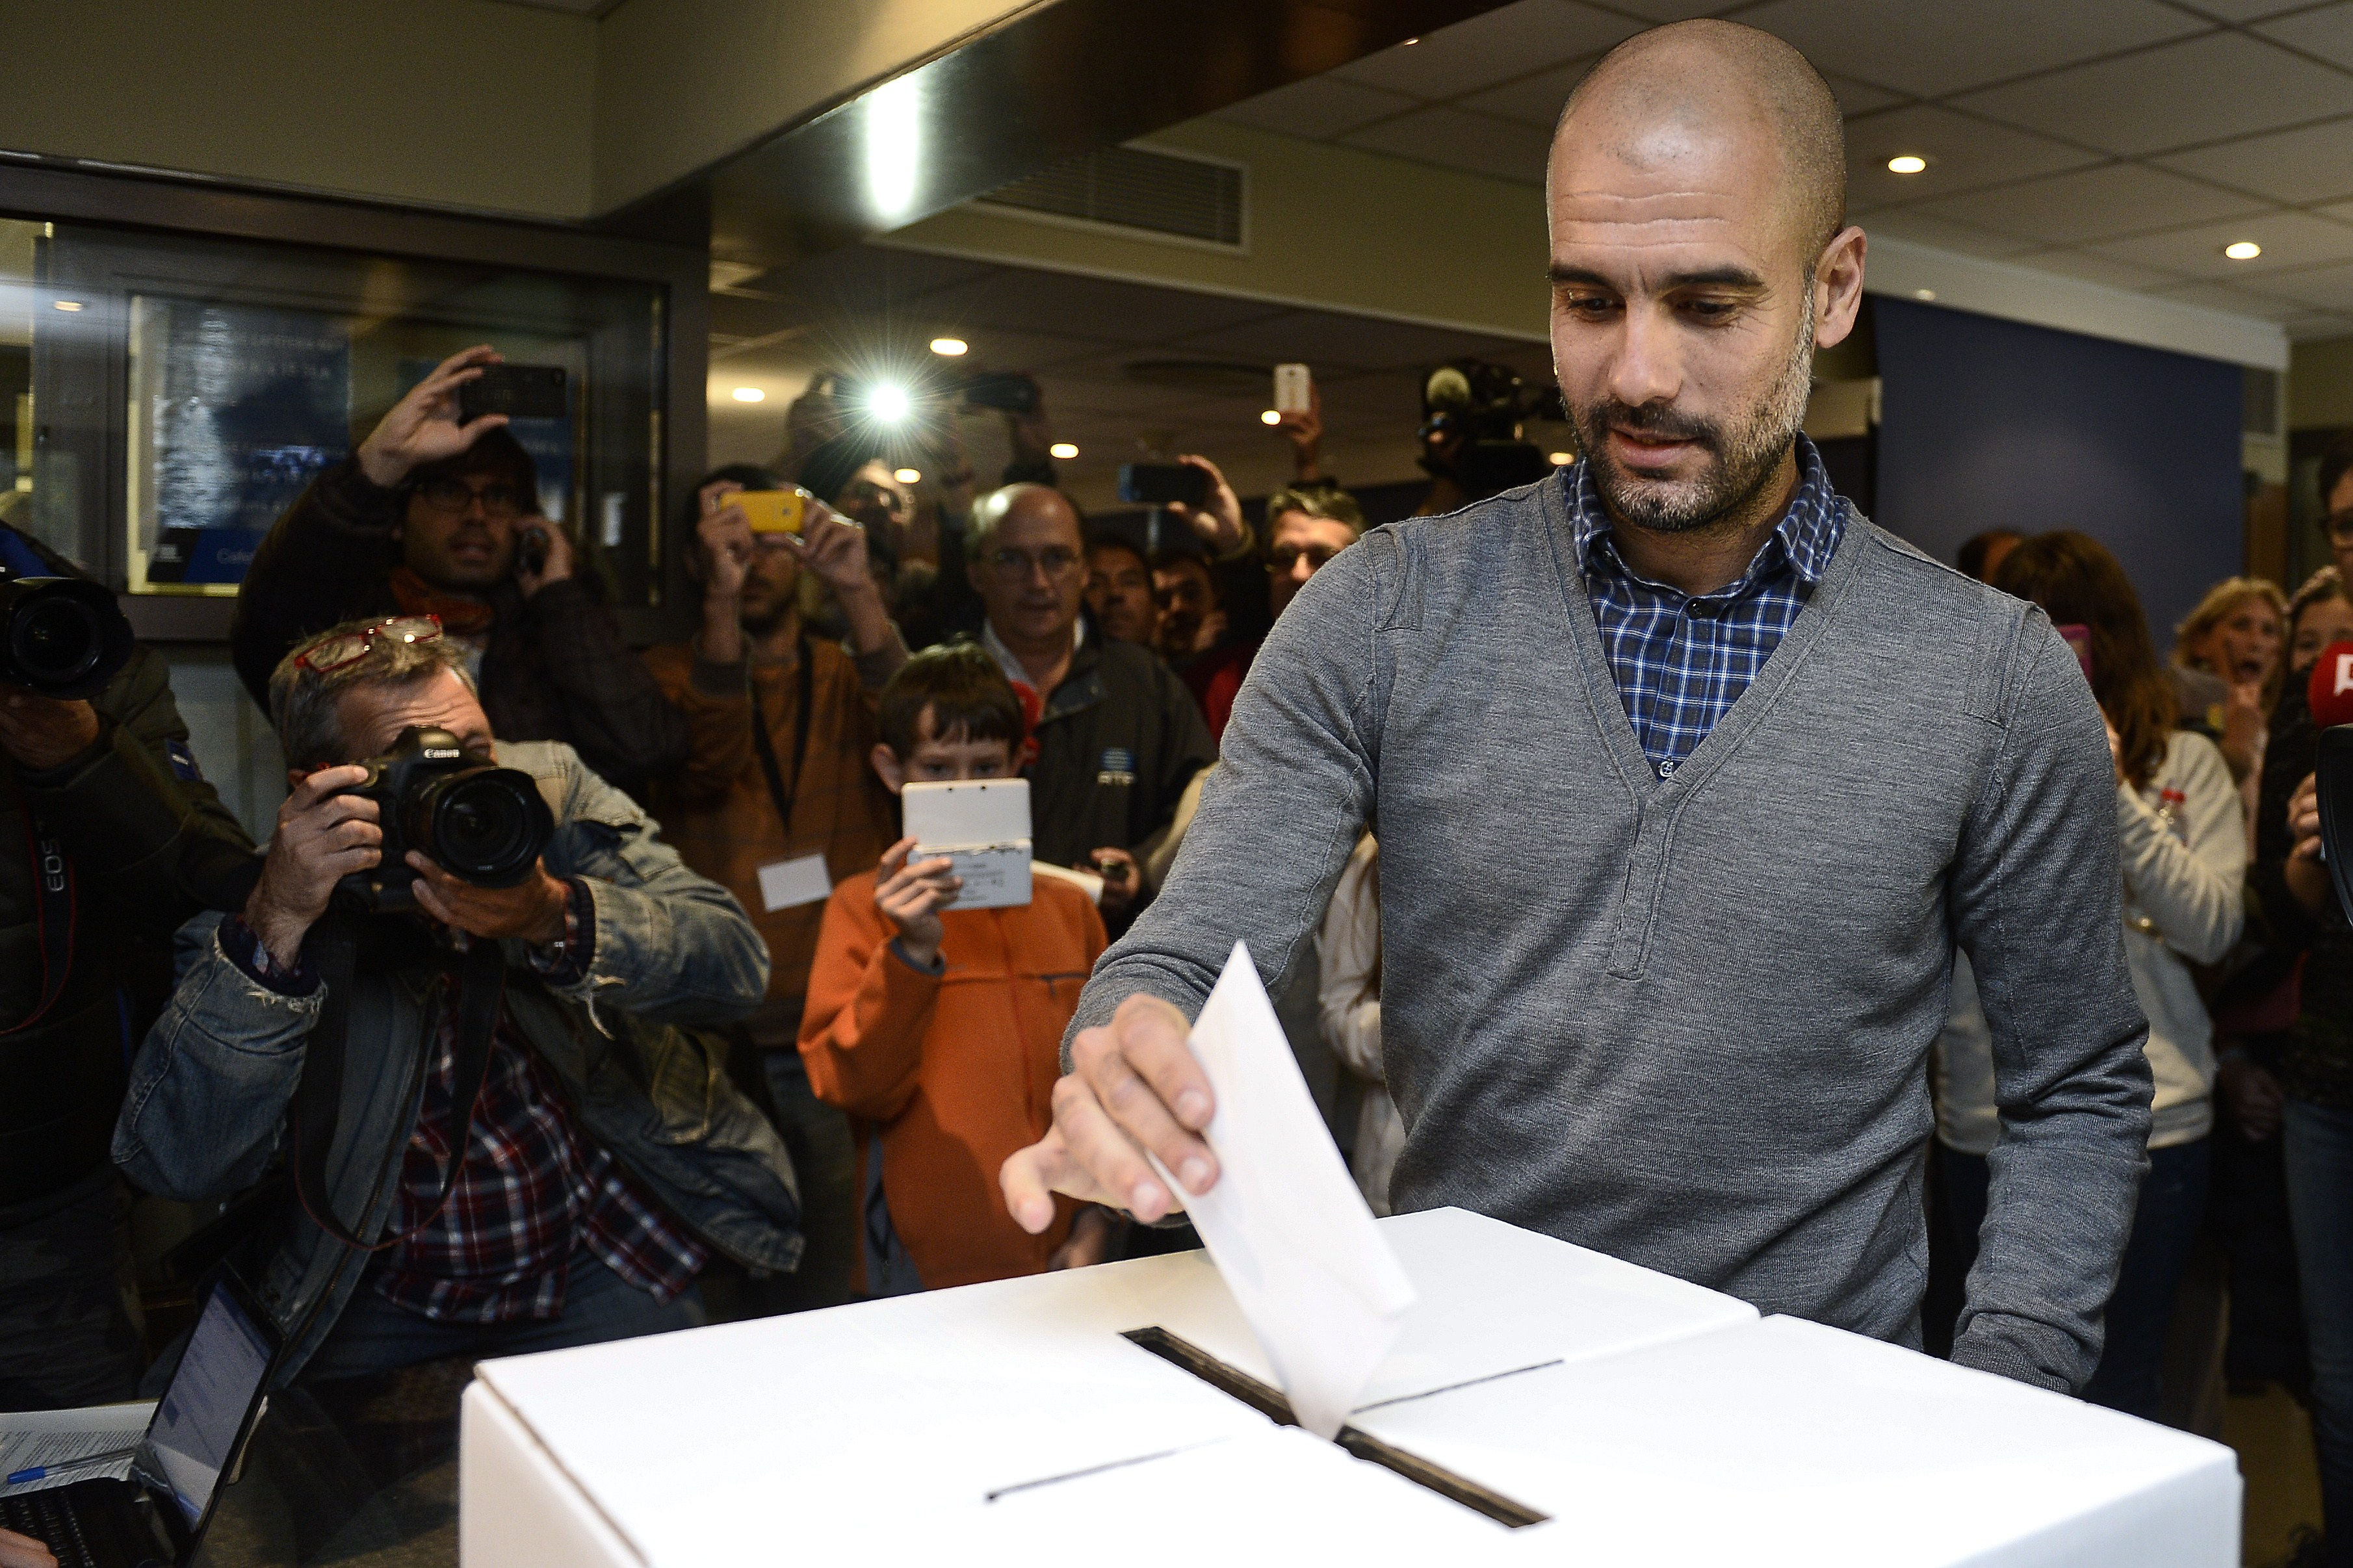 Pep Guardiola Catalunya independence